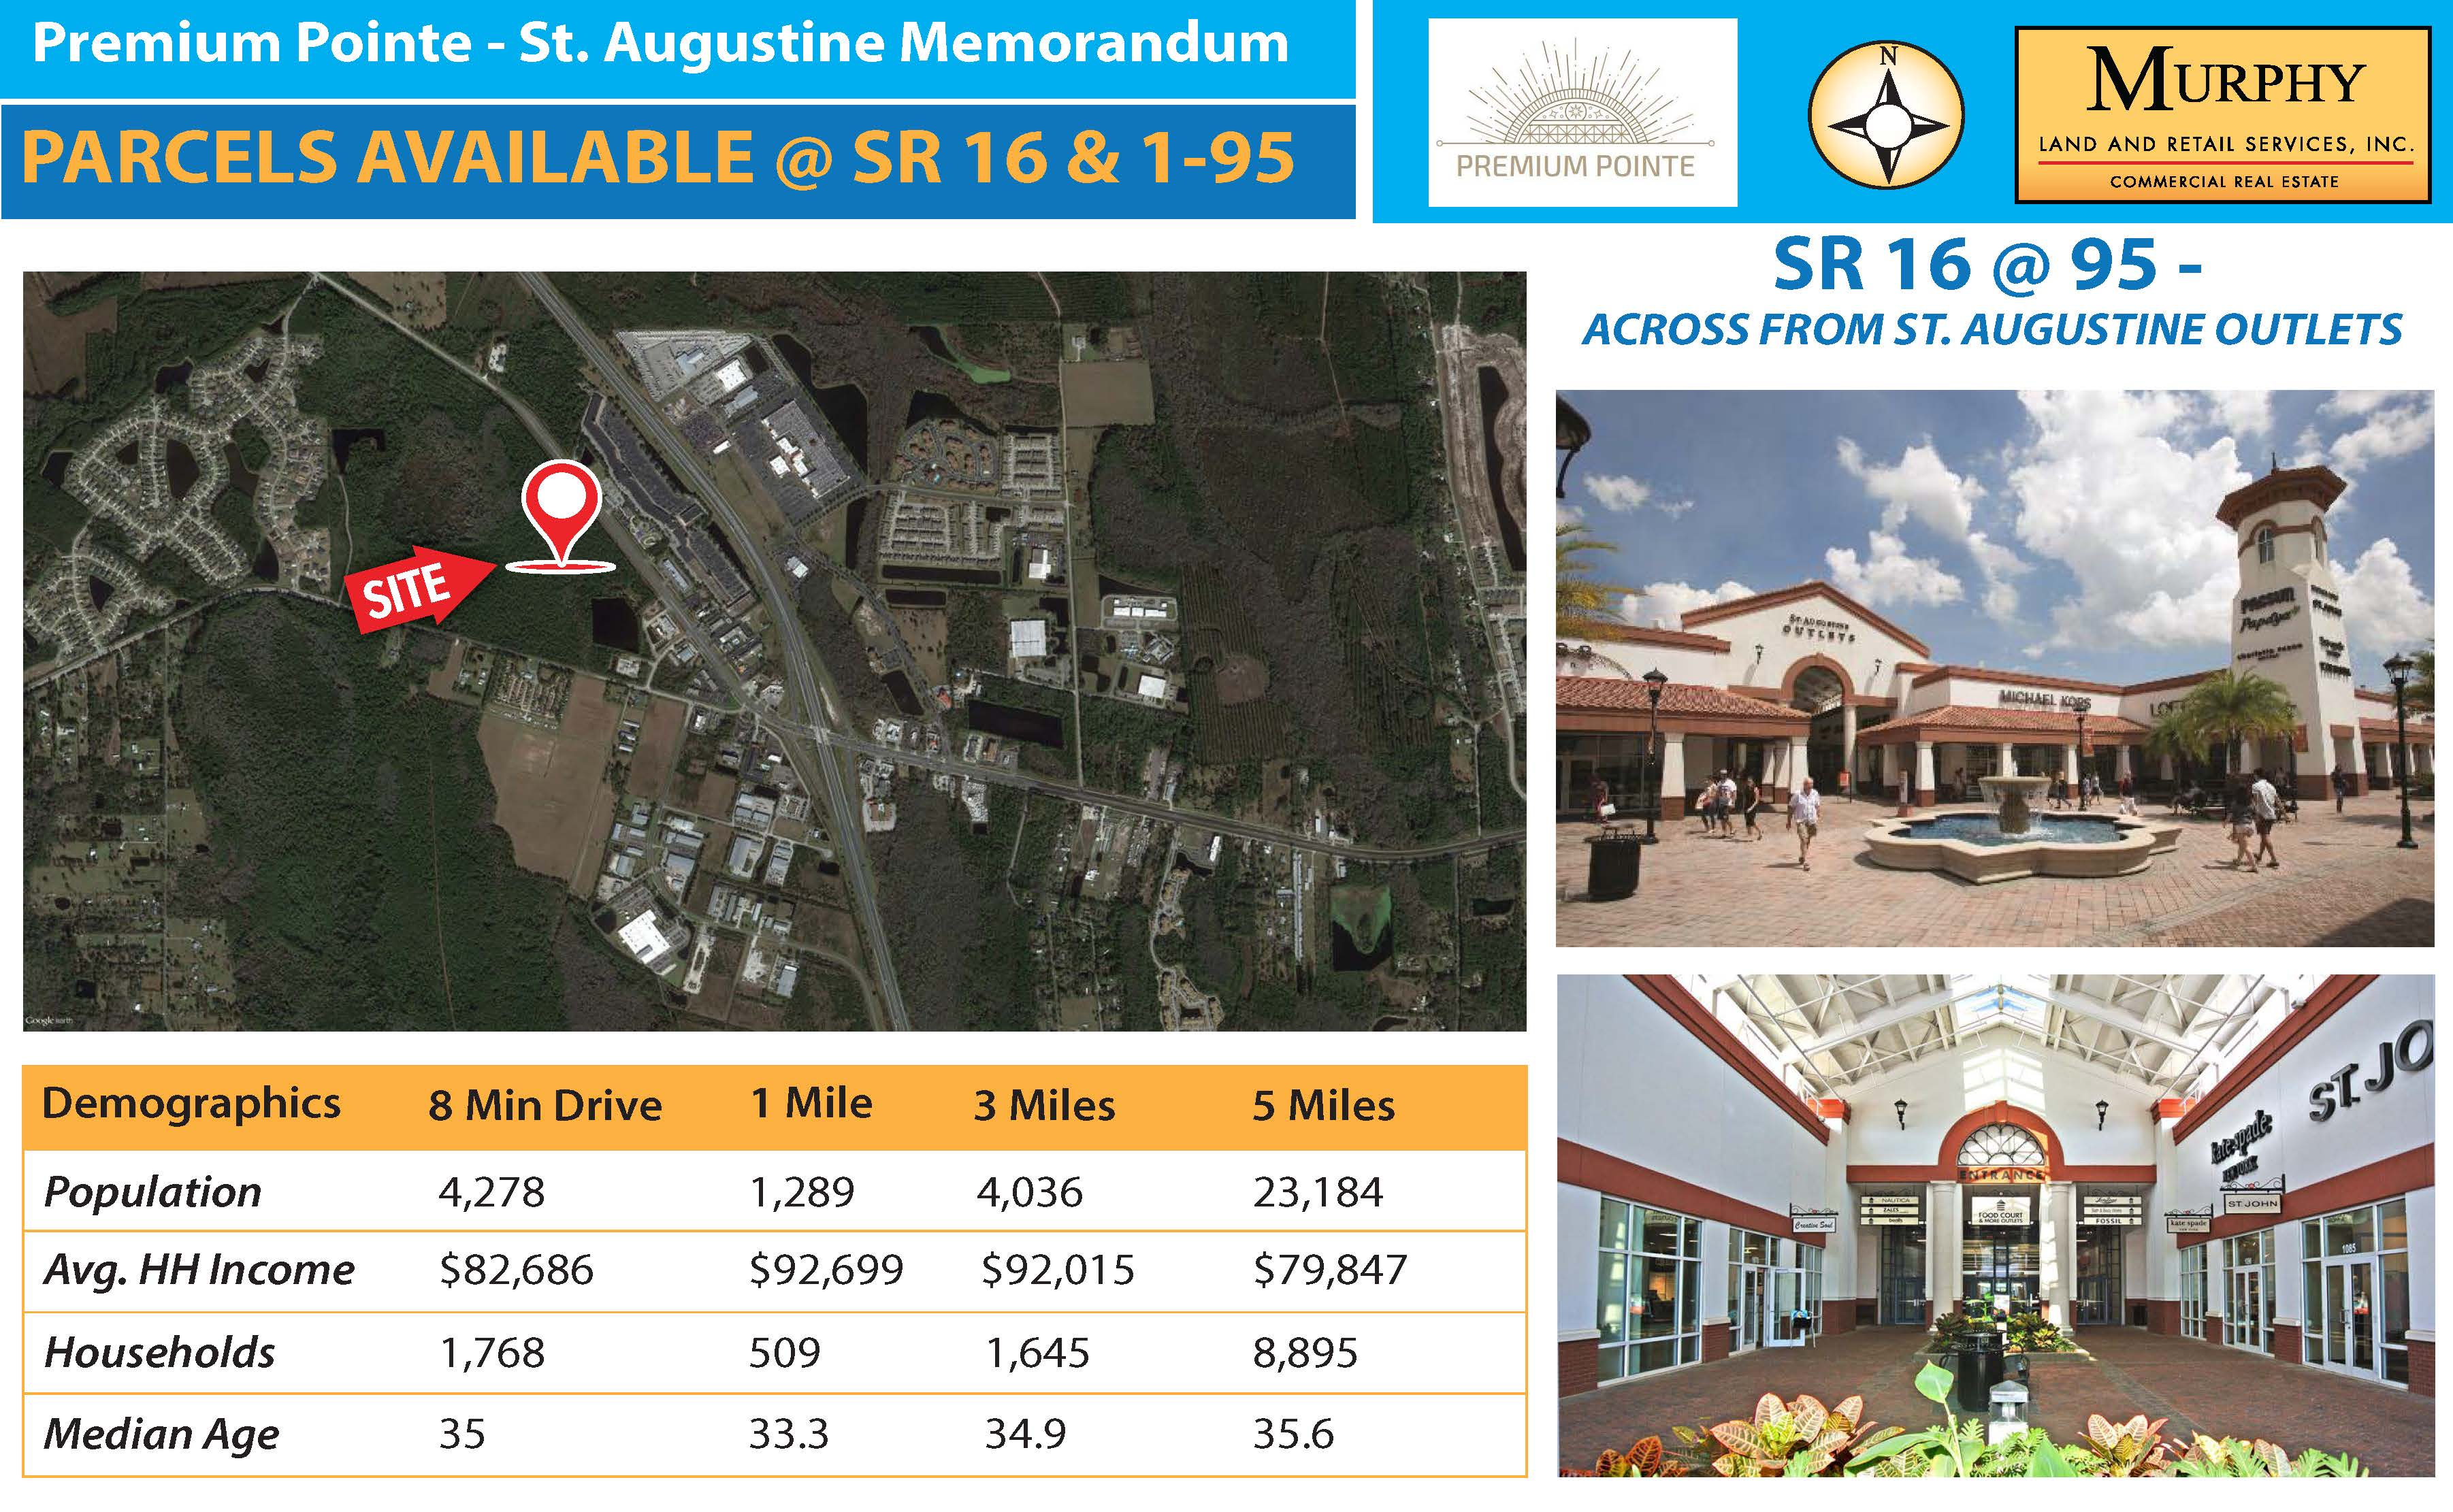 Premium Pointe at SR 16 and I-95